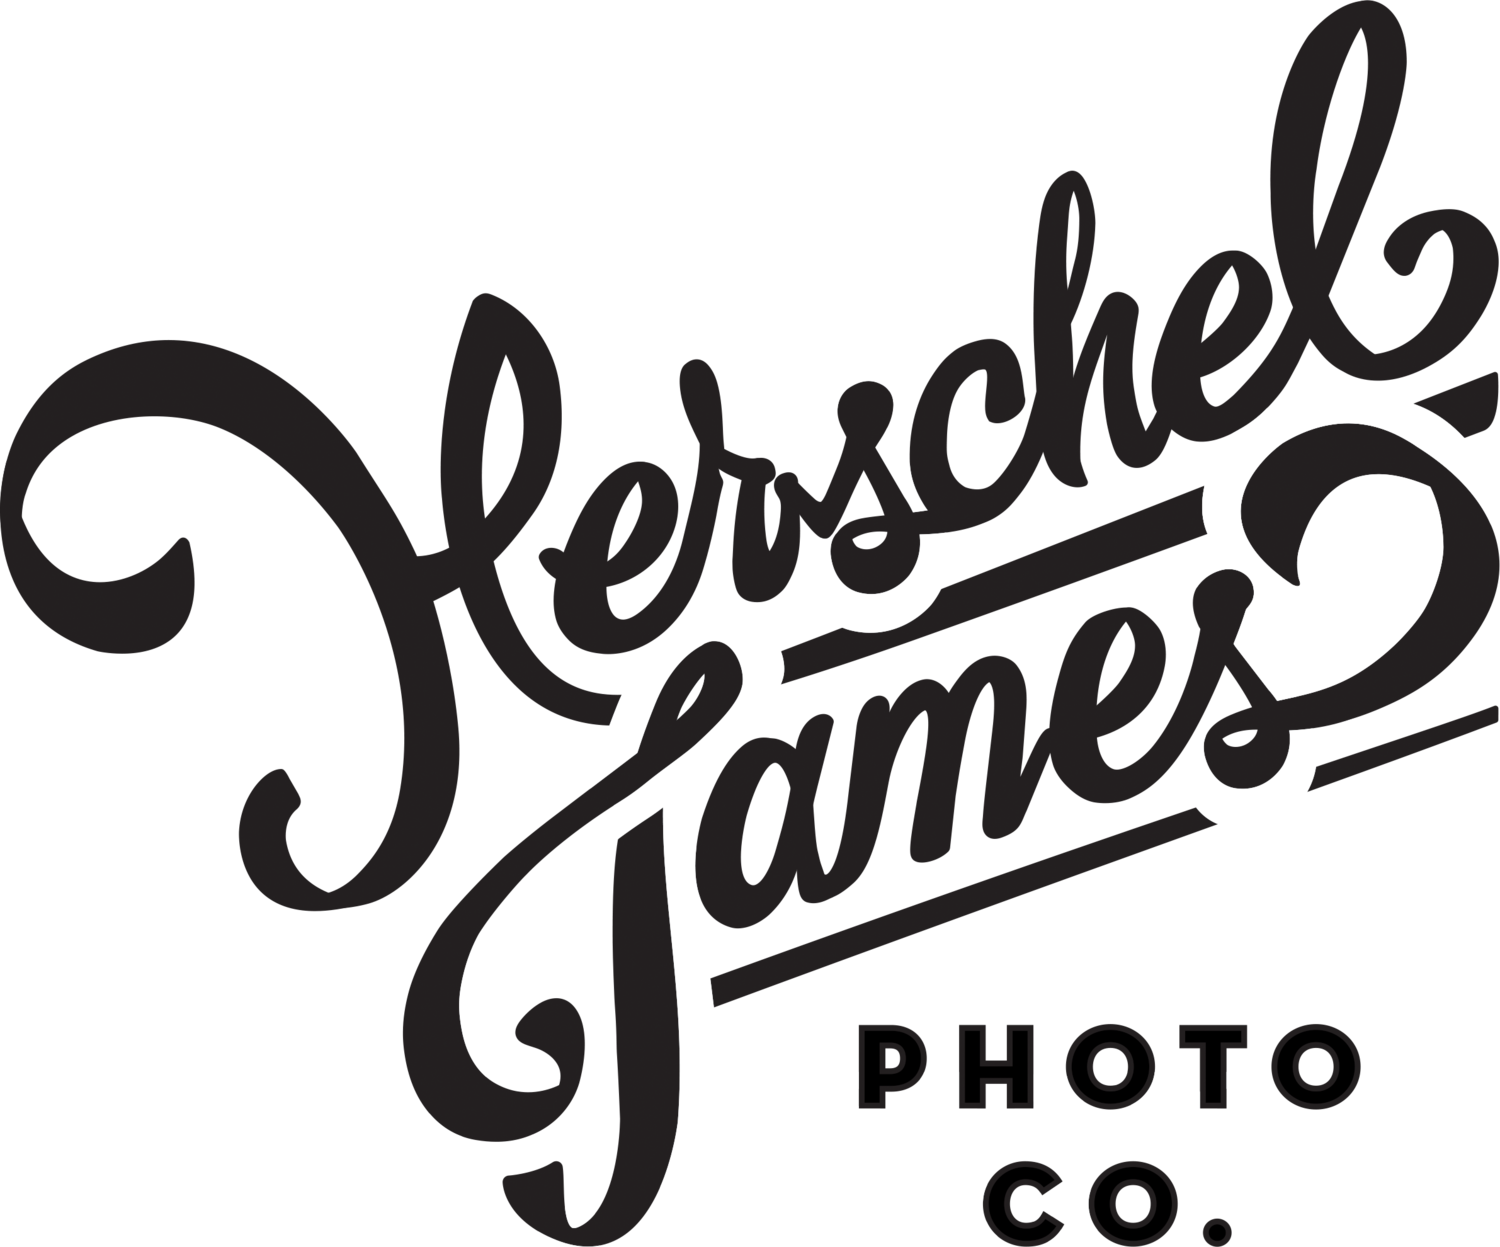 Herschel-James Photography